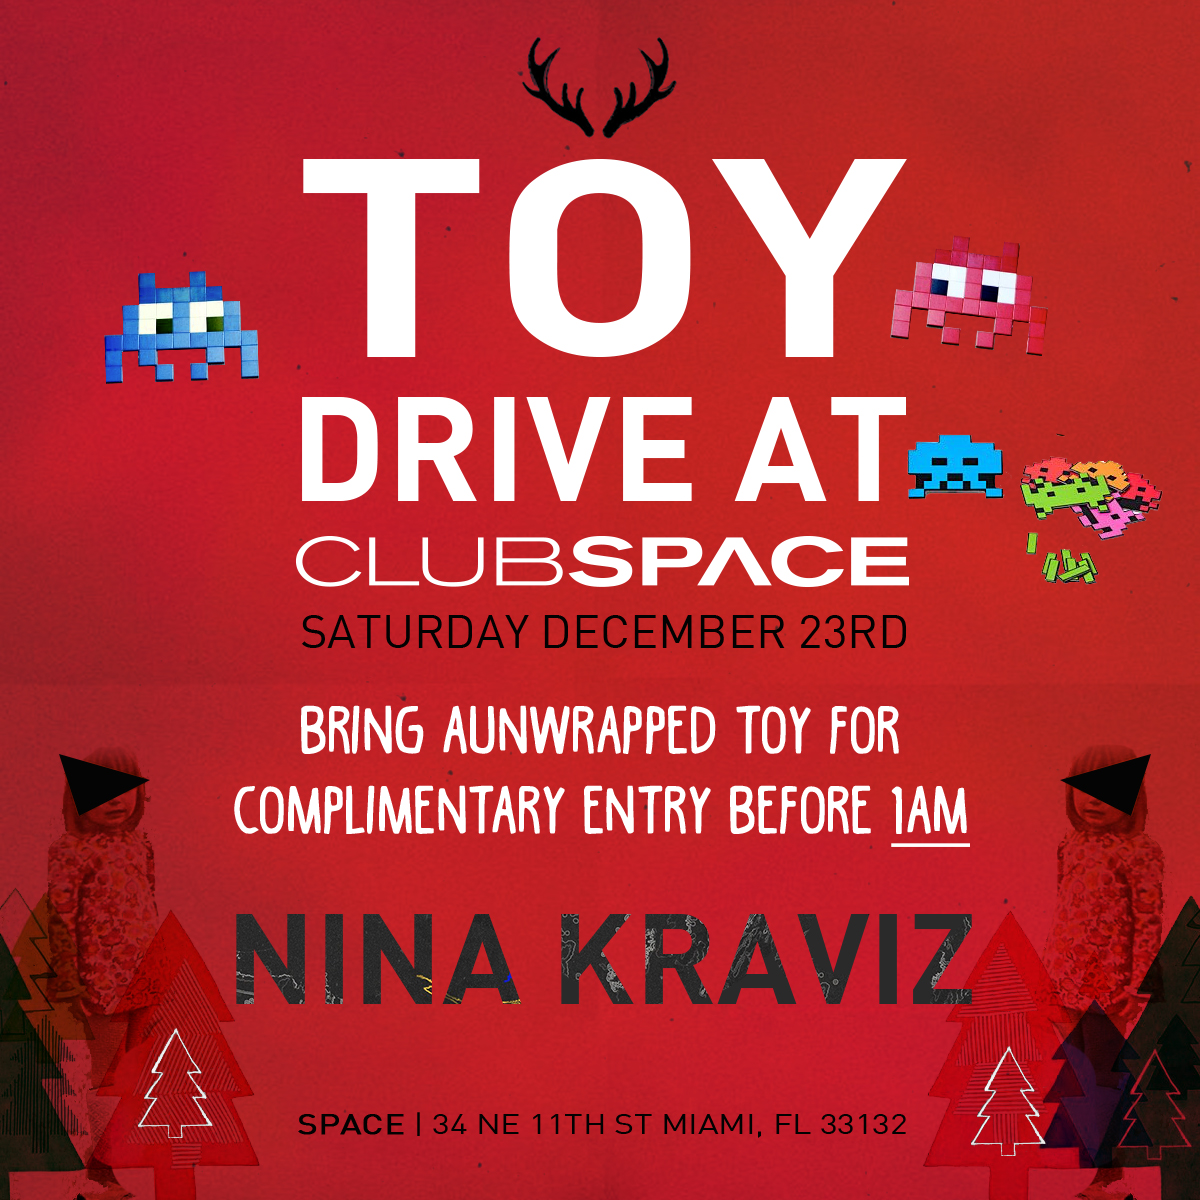 Annual Toy Drive at Space Miami